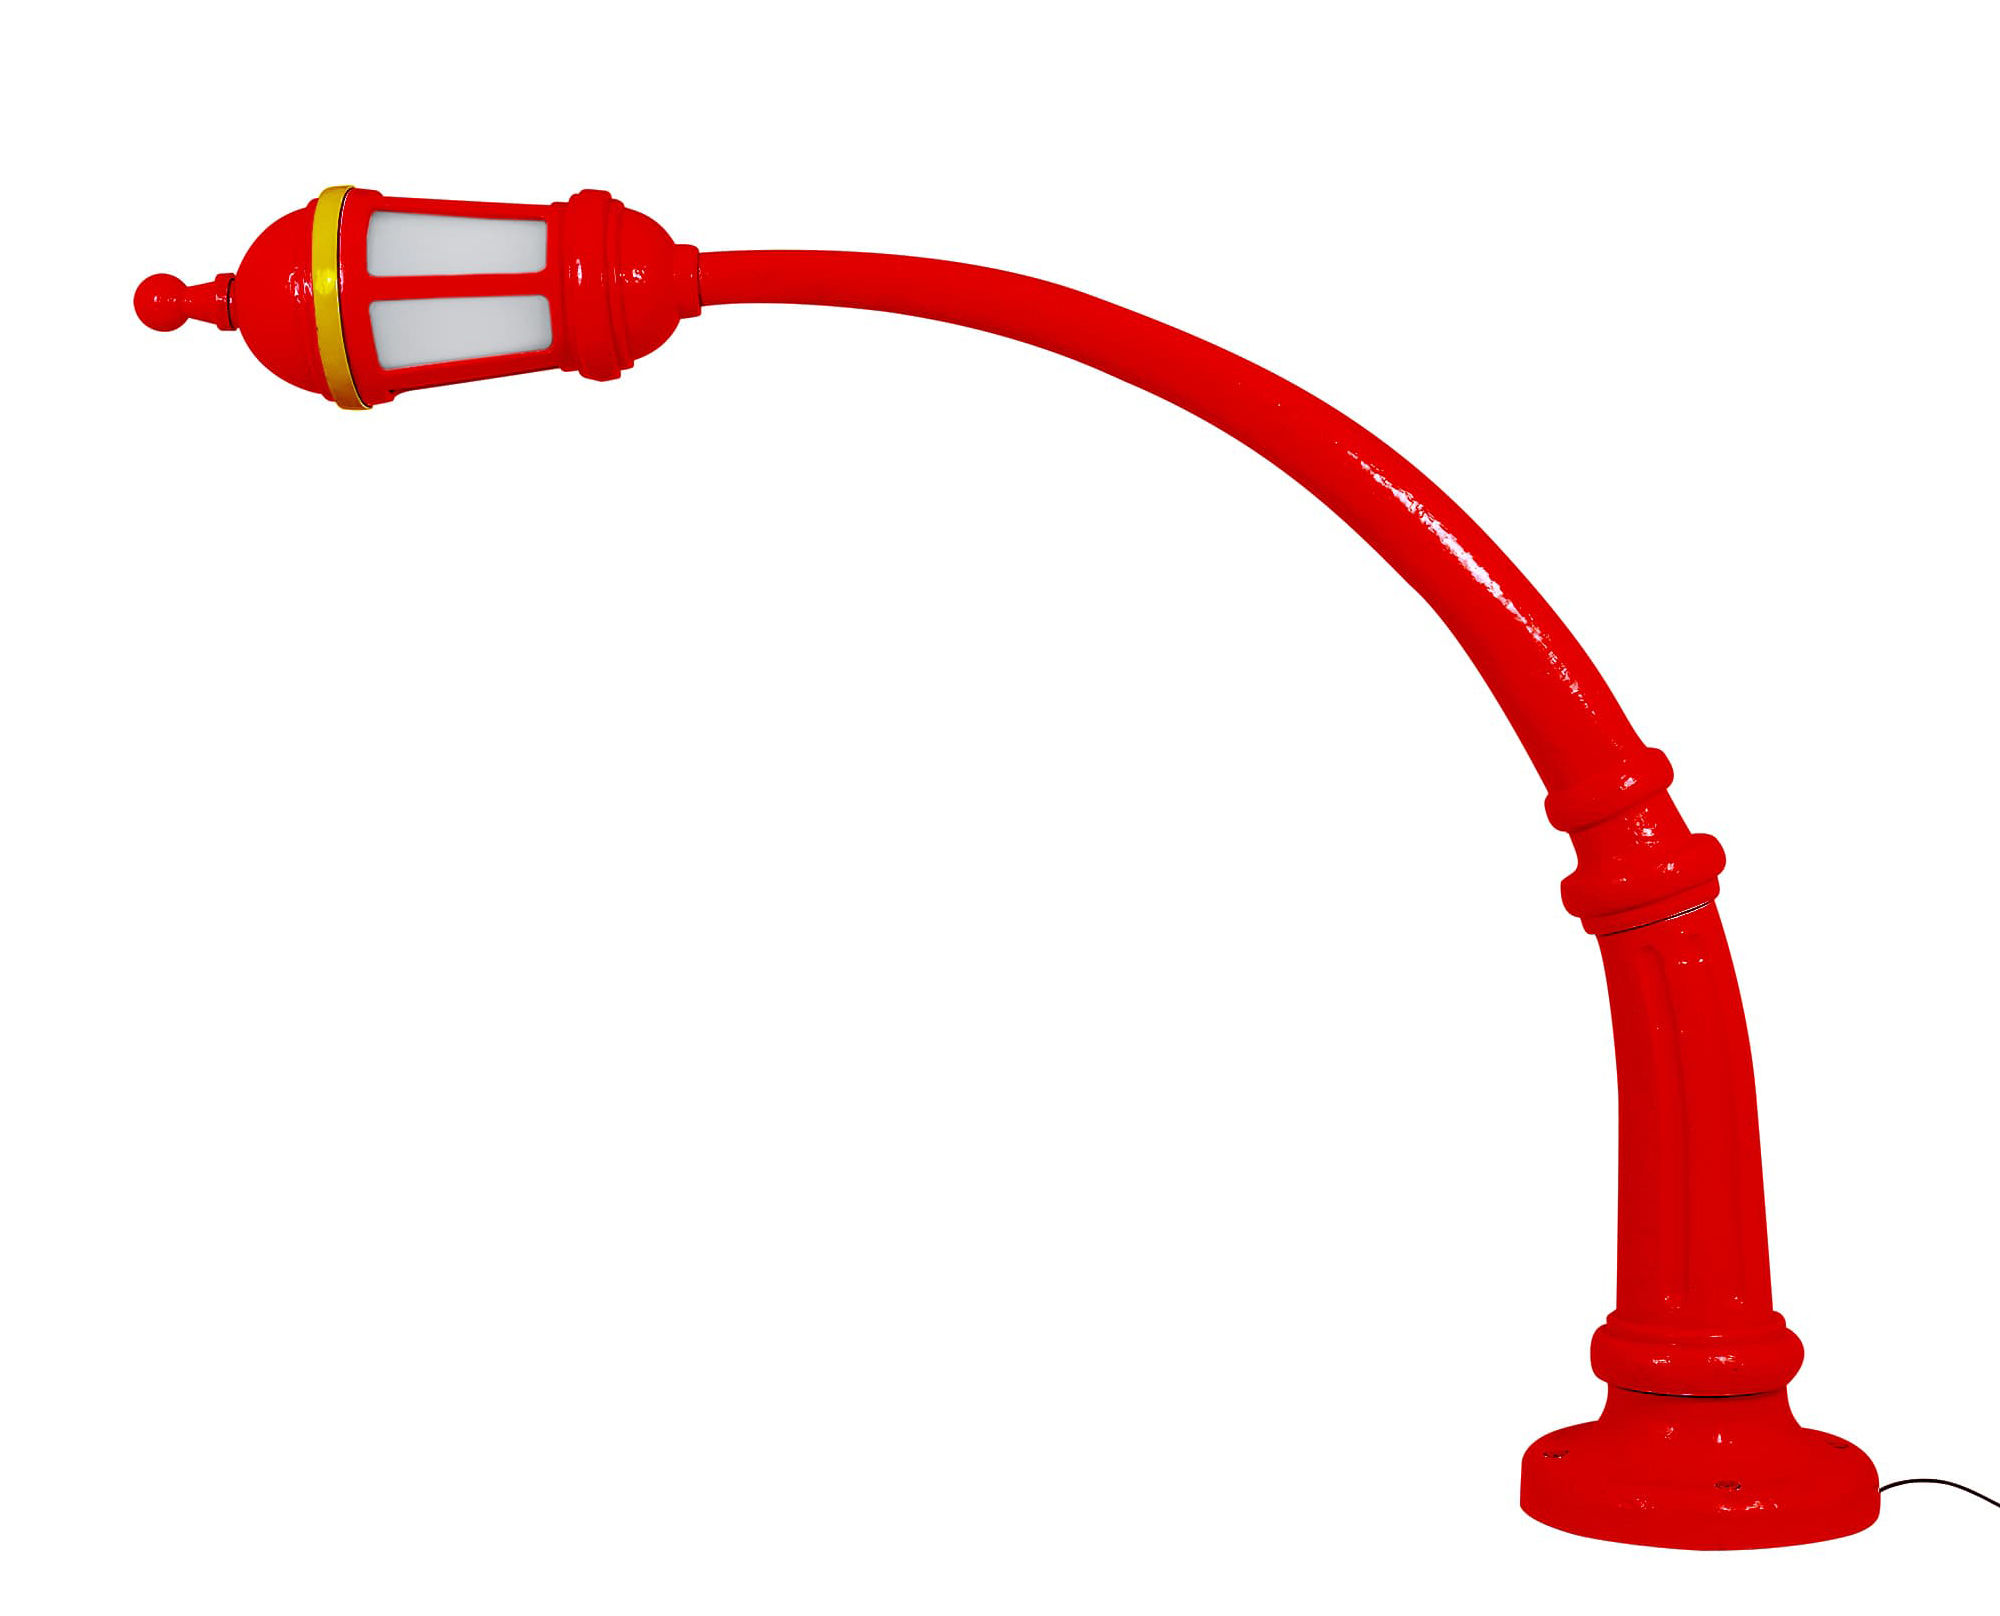 Lighting - Outdoor Lighting - Street Lamp Outdoor Floor lamp - / Resin - L 242 x H 190 cm by Seletti - Red - Acrylic, concrete, Resin